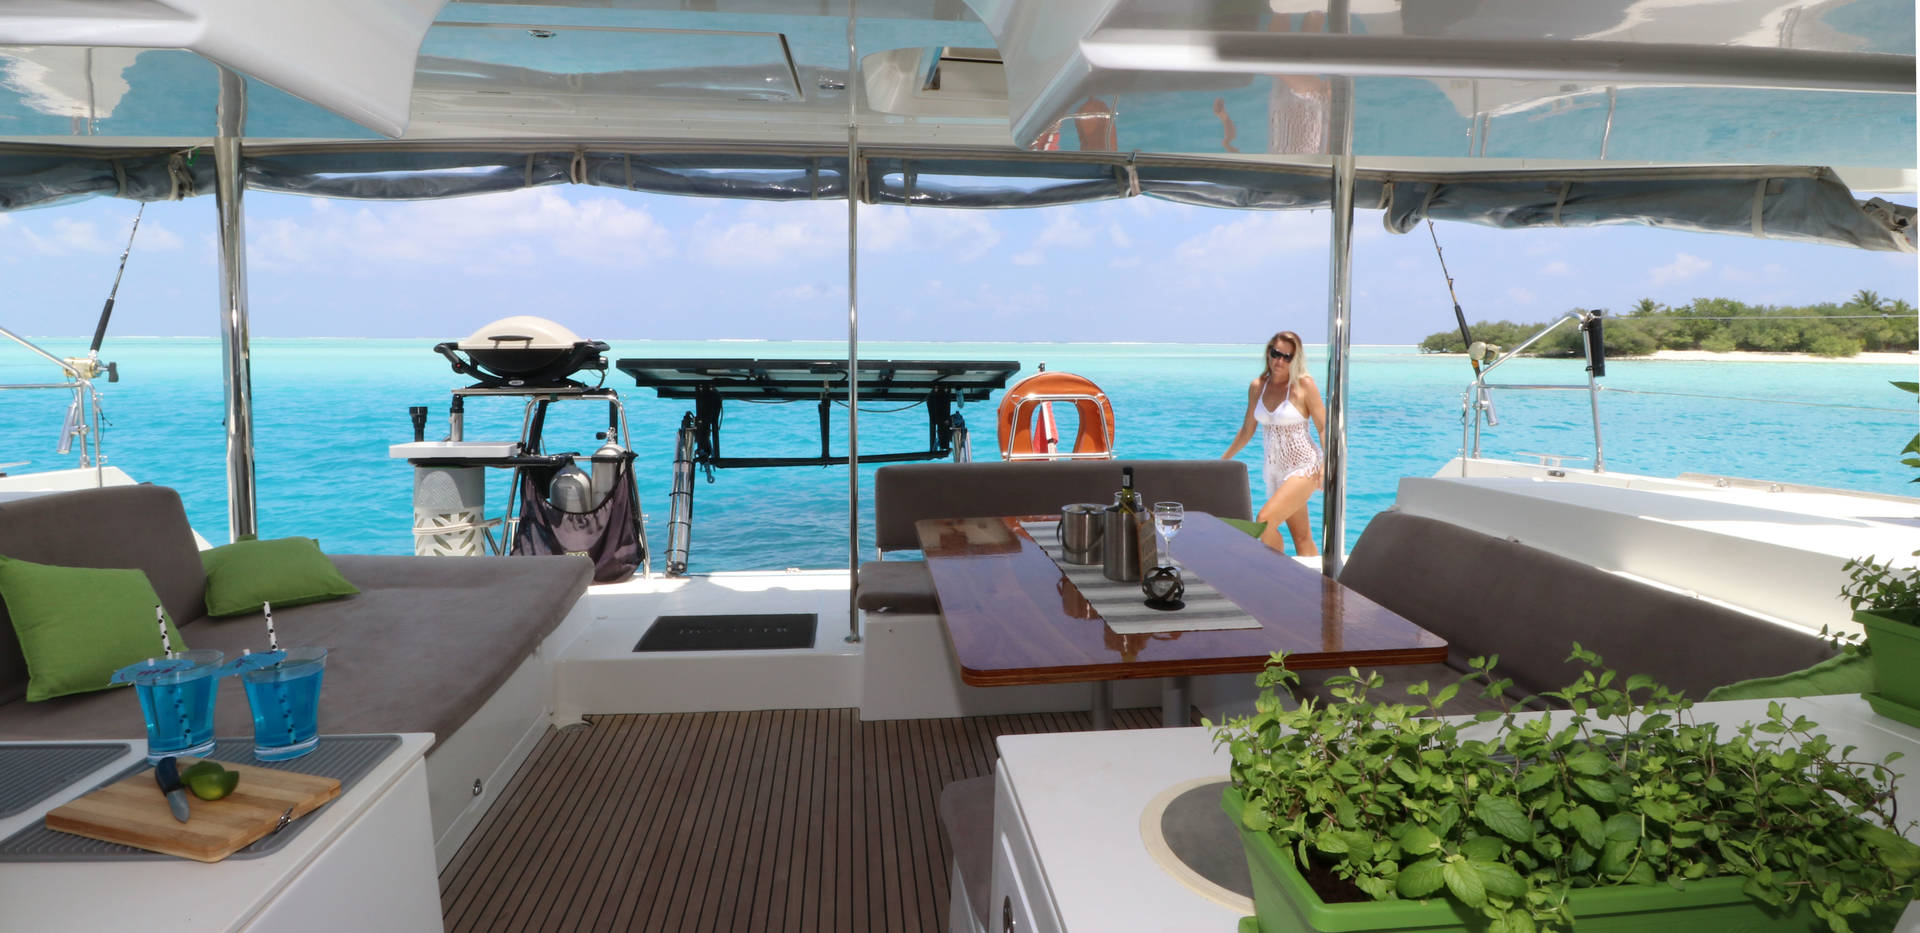 Cockpit - Outdoor dining & lounging area | Elysia Luxury Yacht Charters Maldives